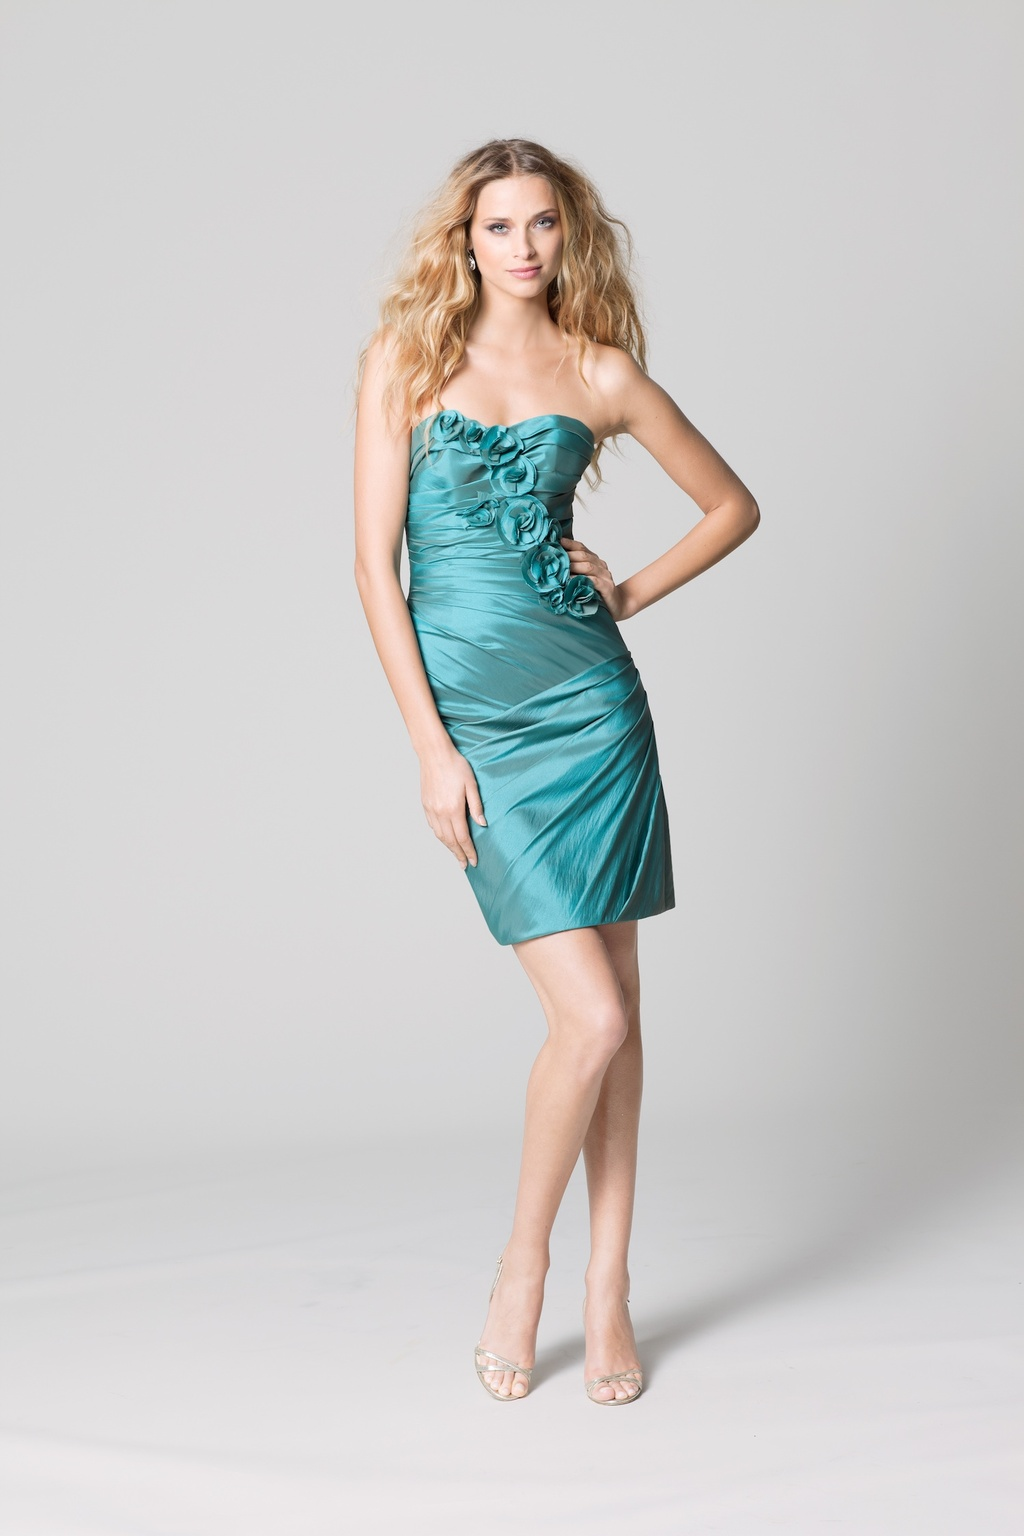 Affordable-bridesmaids-dresses-fall-2012-wtoo-by-watters-bridal-party-aqua-shimmer-strapless.full